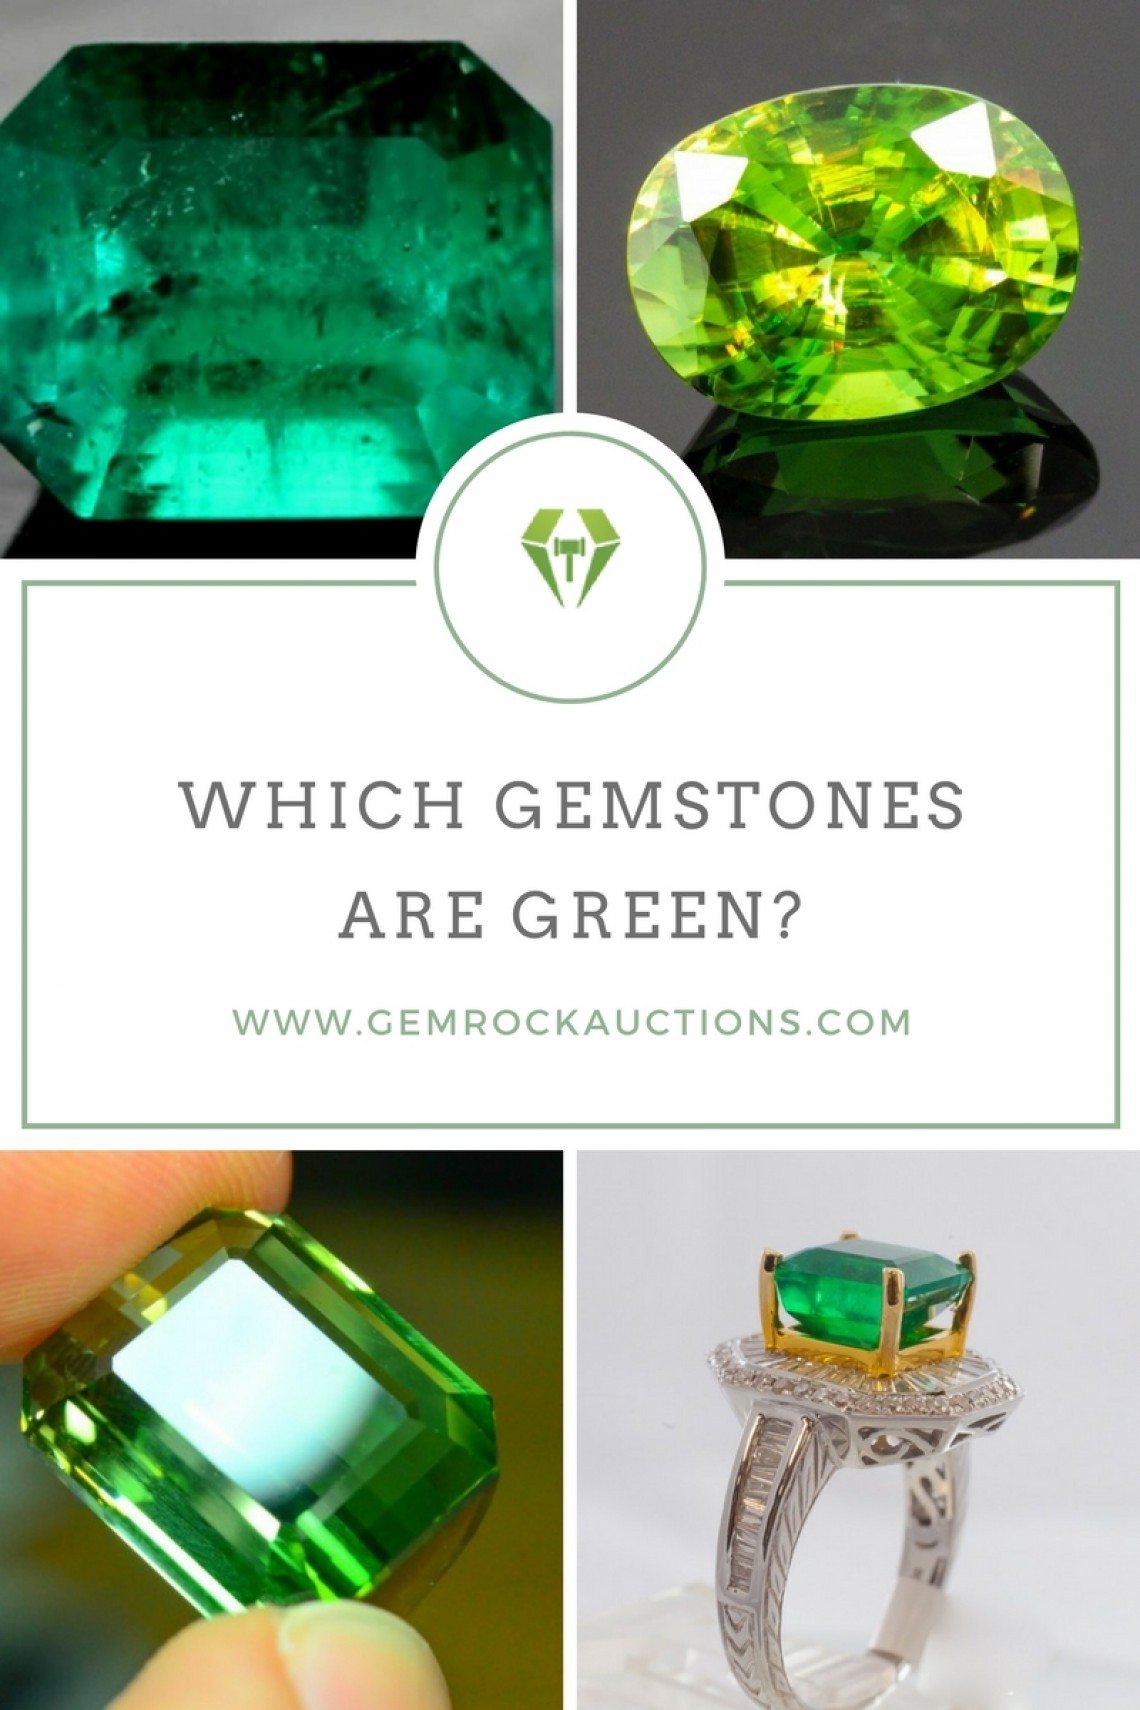 which gemstones are green